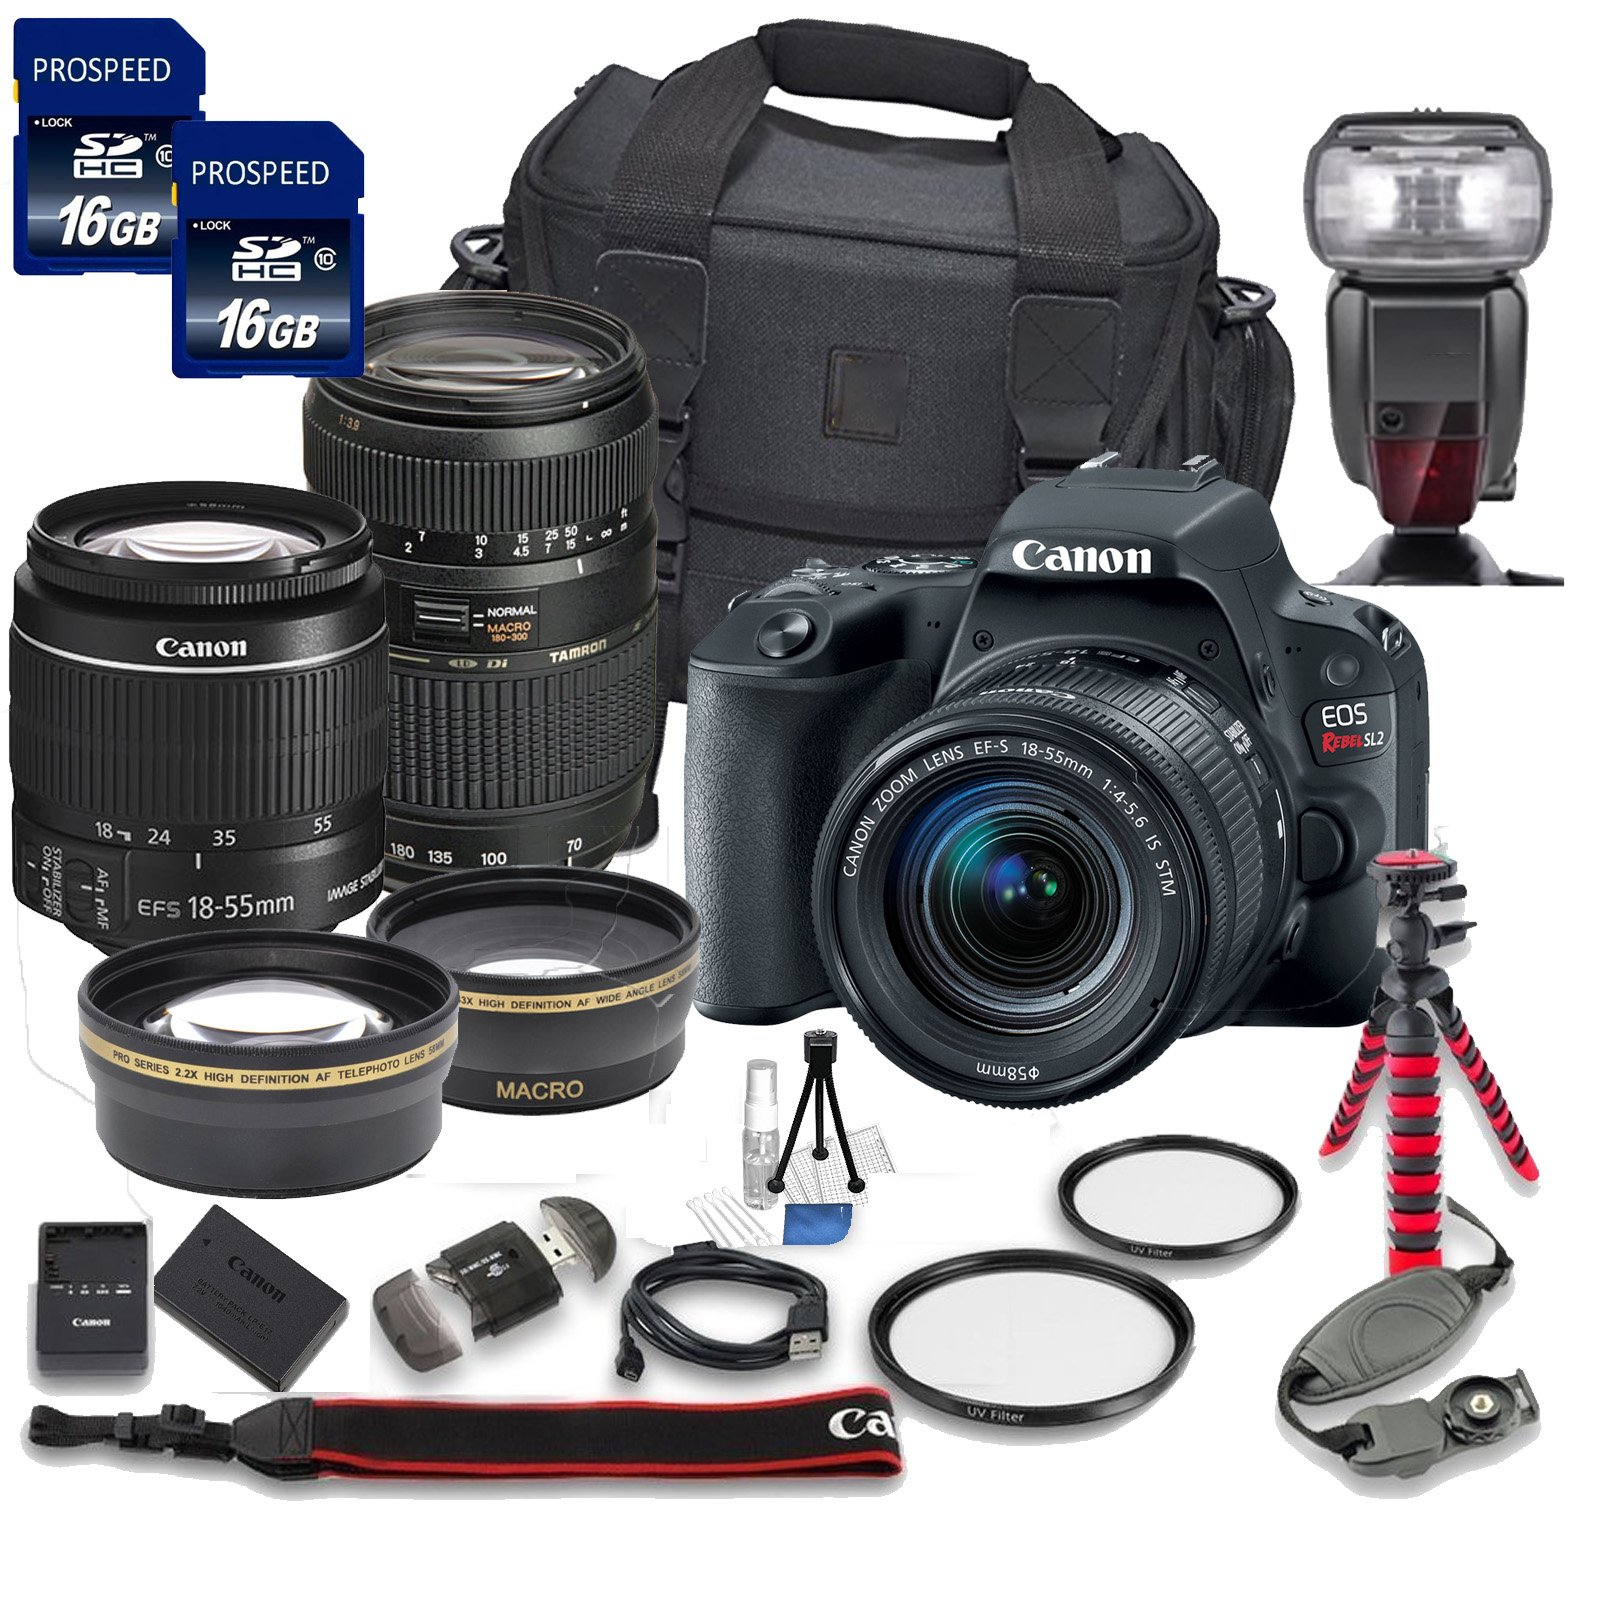 Canon EOS Rebel SL2 DSLR Camera with Canon EF-S 18-55mm f/4-5.6 IS STM Lens + Tamron 70-300mm f/4-5.6 Di LD Lens + 2 Aux Lenses + 2 Pcs 16GB Memory Card + Premium Accessories Bundle (18 Items) by Canon